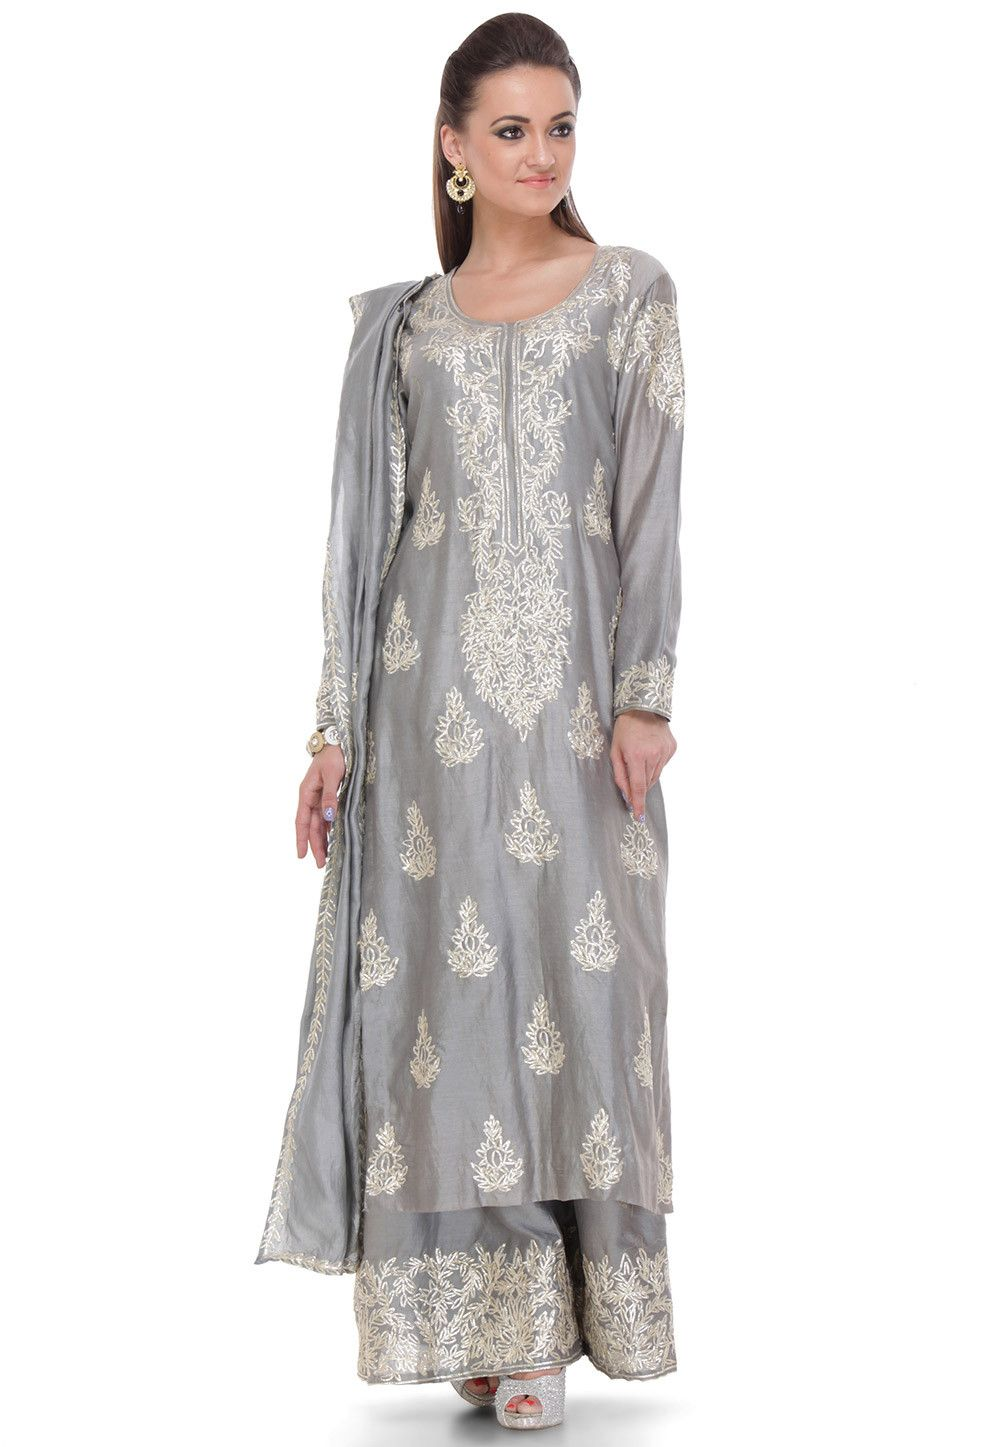 93a8e4b7b3 Buy Hand Embroidered Straight Cut Pure Chanderi Silk Suit in Grey online,Item  code: KUL42, Occasion: Festival, Party, Work: Contemporary, Foliage Print,  ...